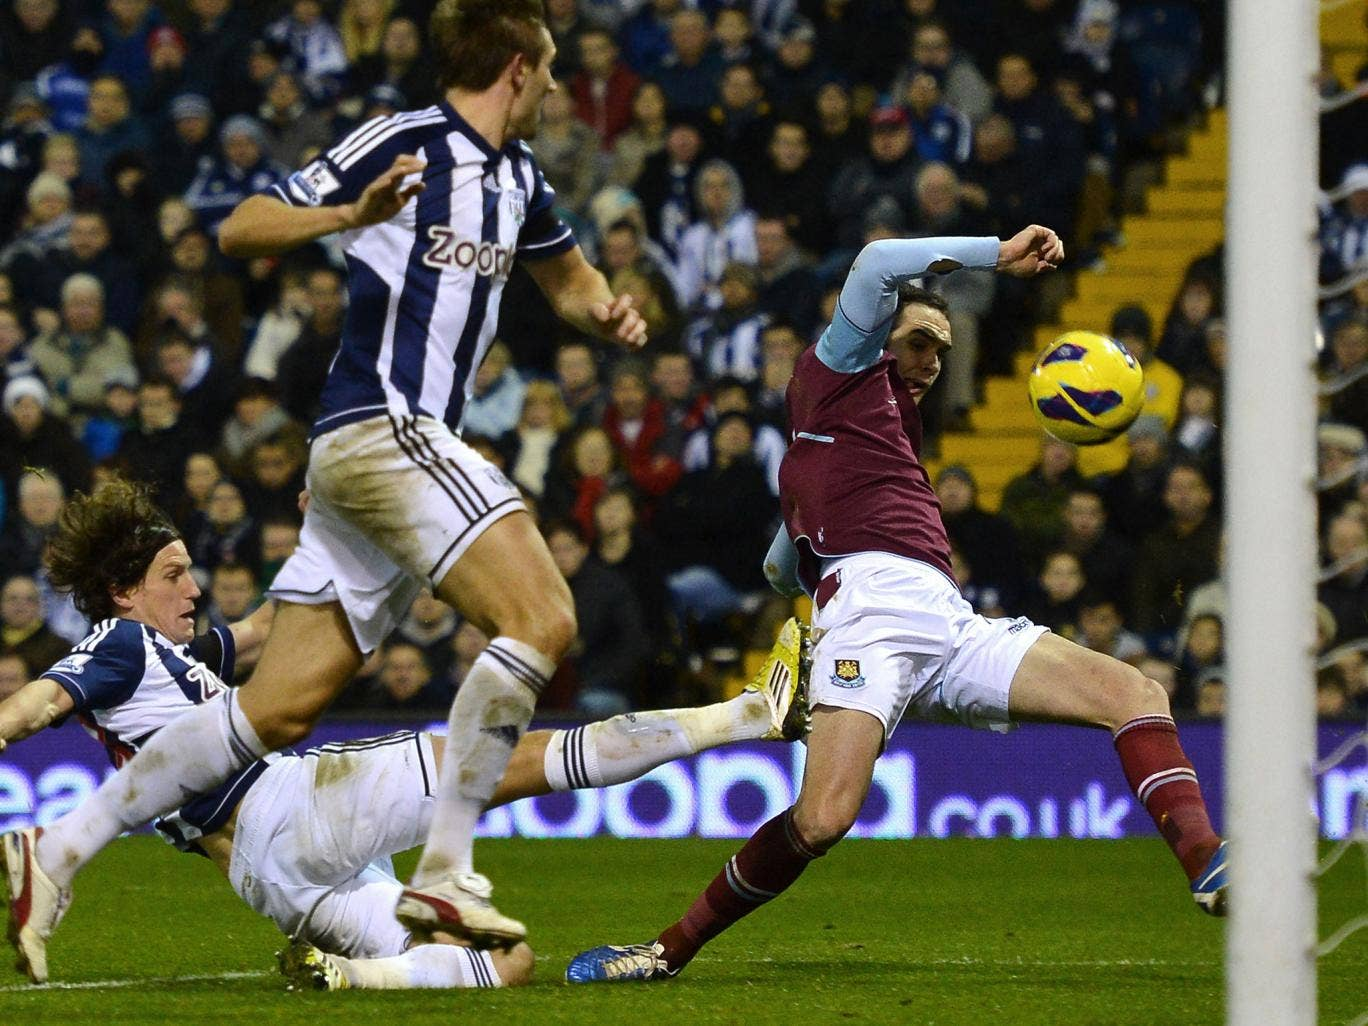 Matt Jarvis of West Ham lunges for the ball in one of many chances